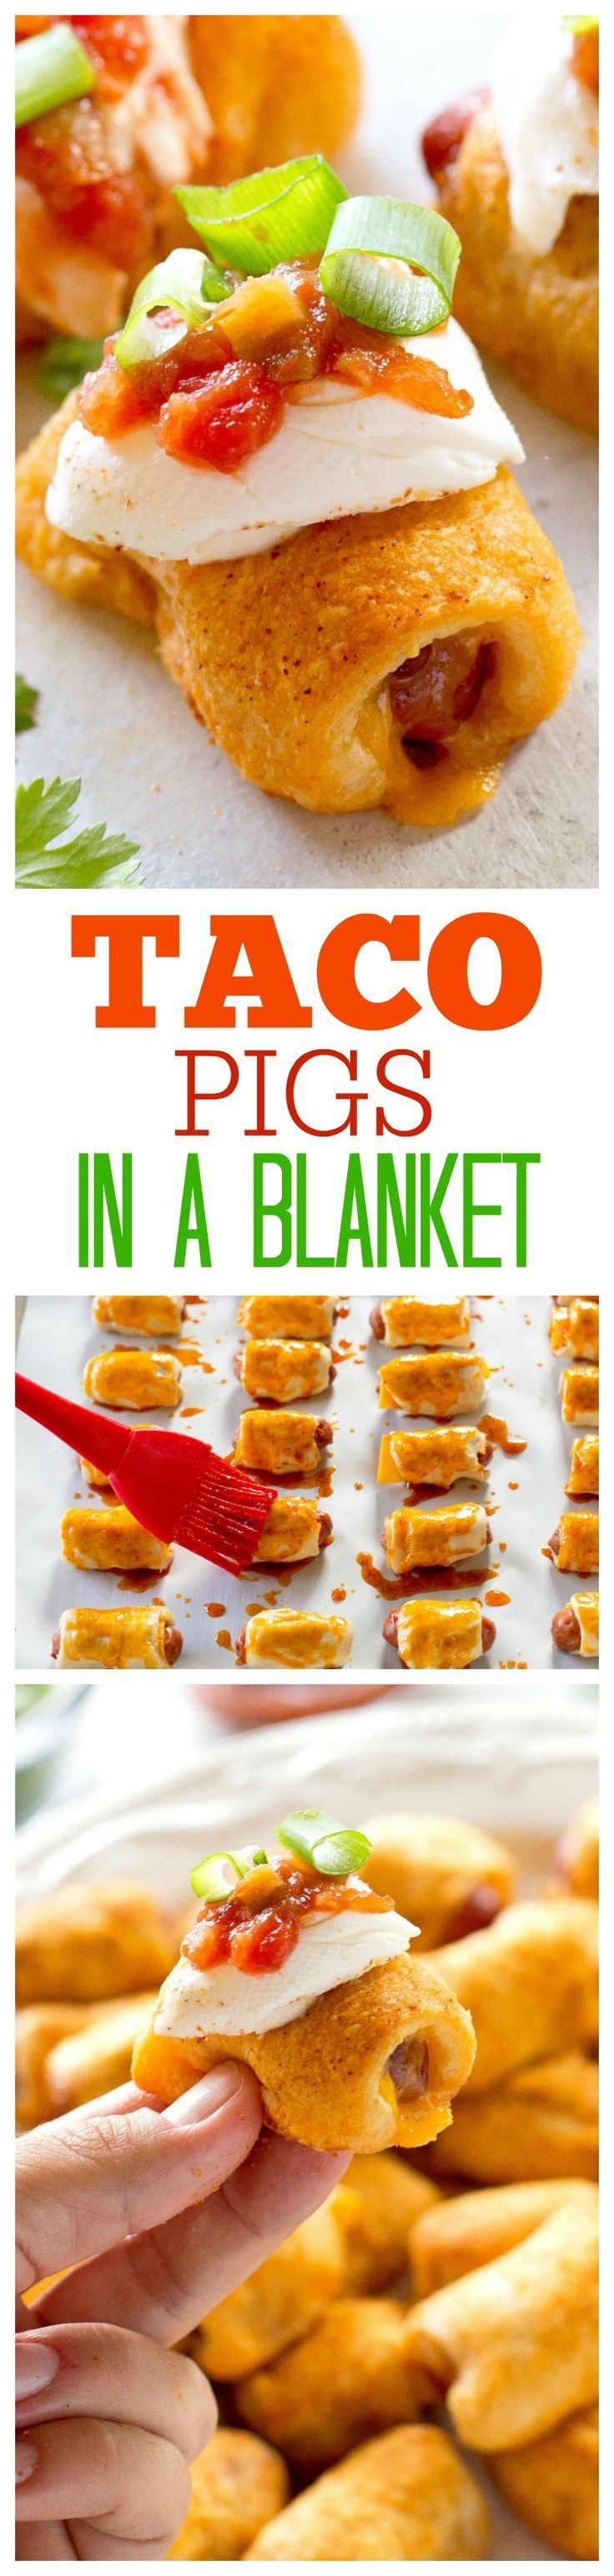 Taco Pigs in a Blanket - a Mexican twist on the classic appetizer. Make a toppings bar so everyone can top their own. http://the-girl-who-ate-everything.com